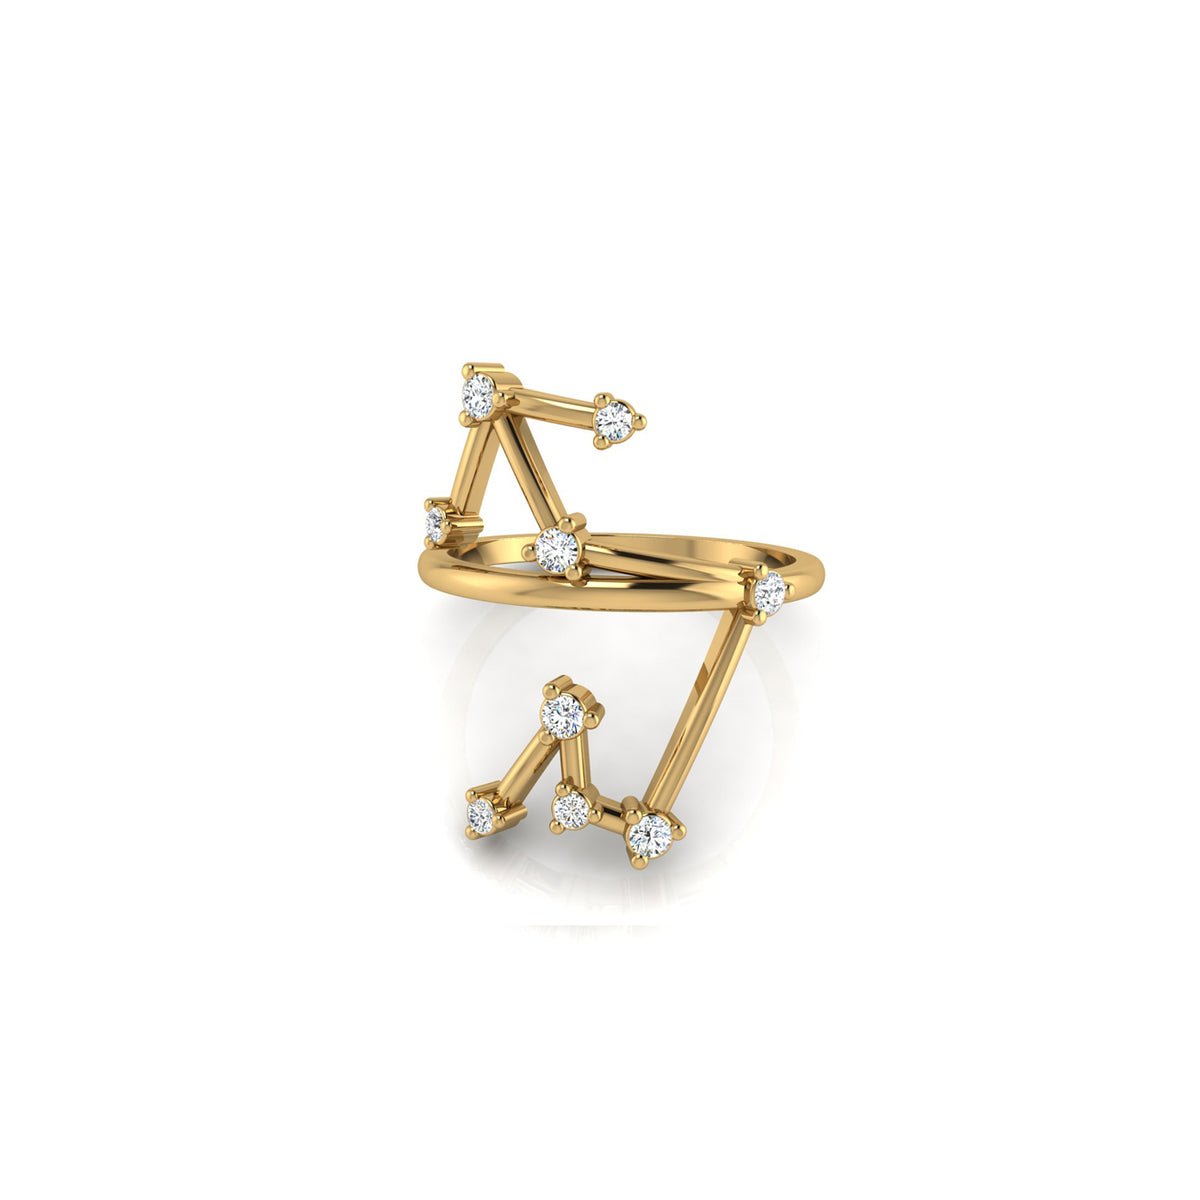 Scorpio Constellation Ring - Tippy Taste Jewelry